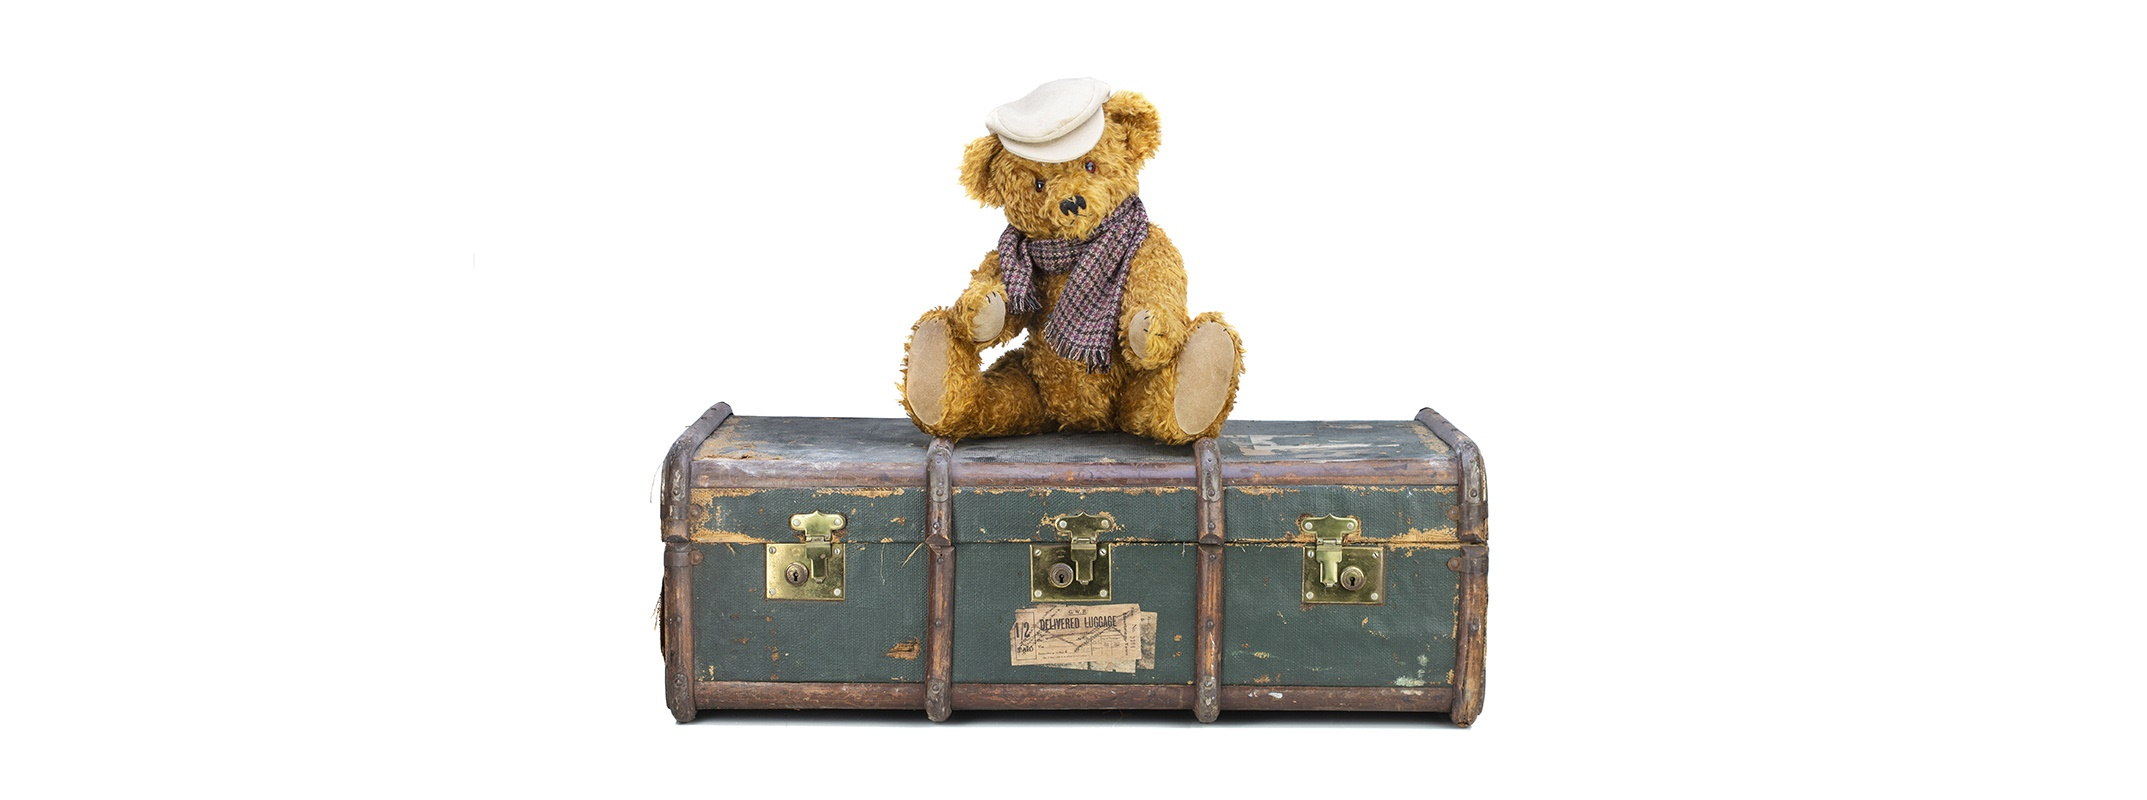 A studio photograph of a teddy bear sitting on an old luggage trunk on a white background